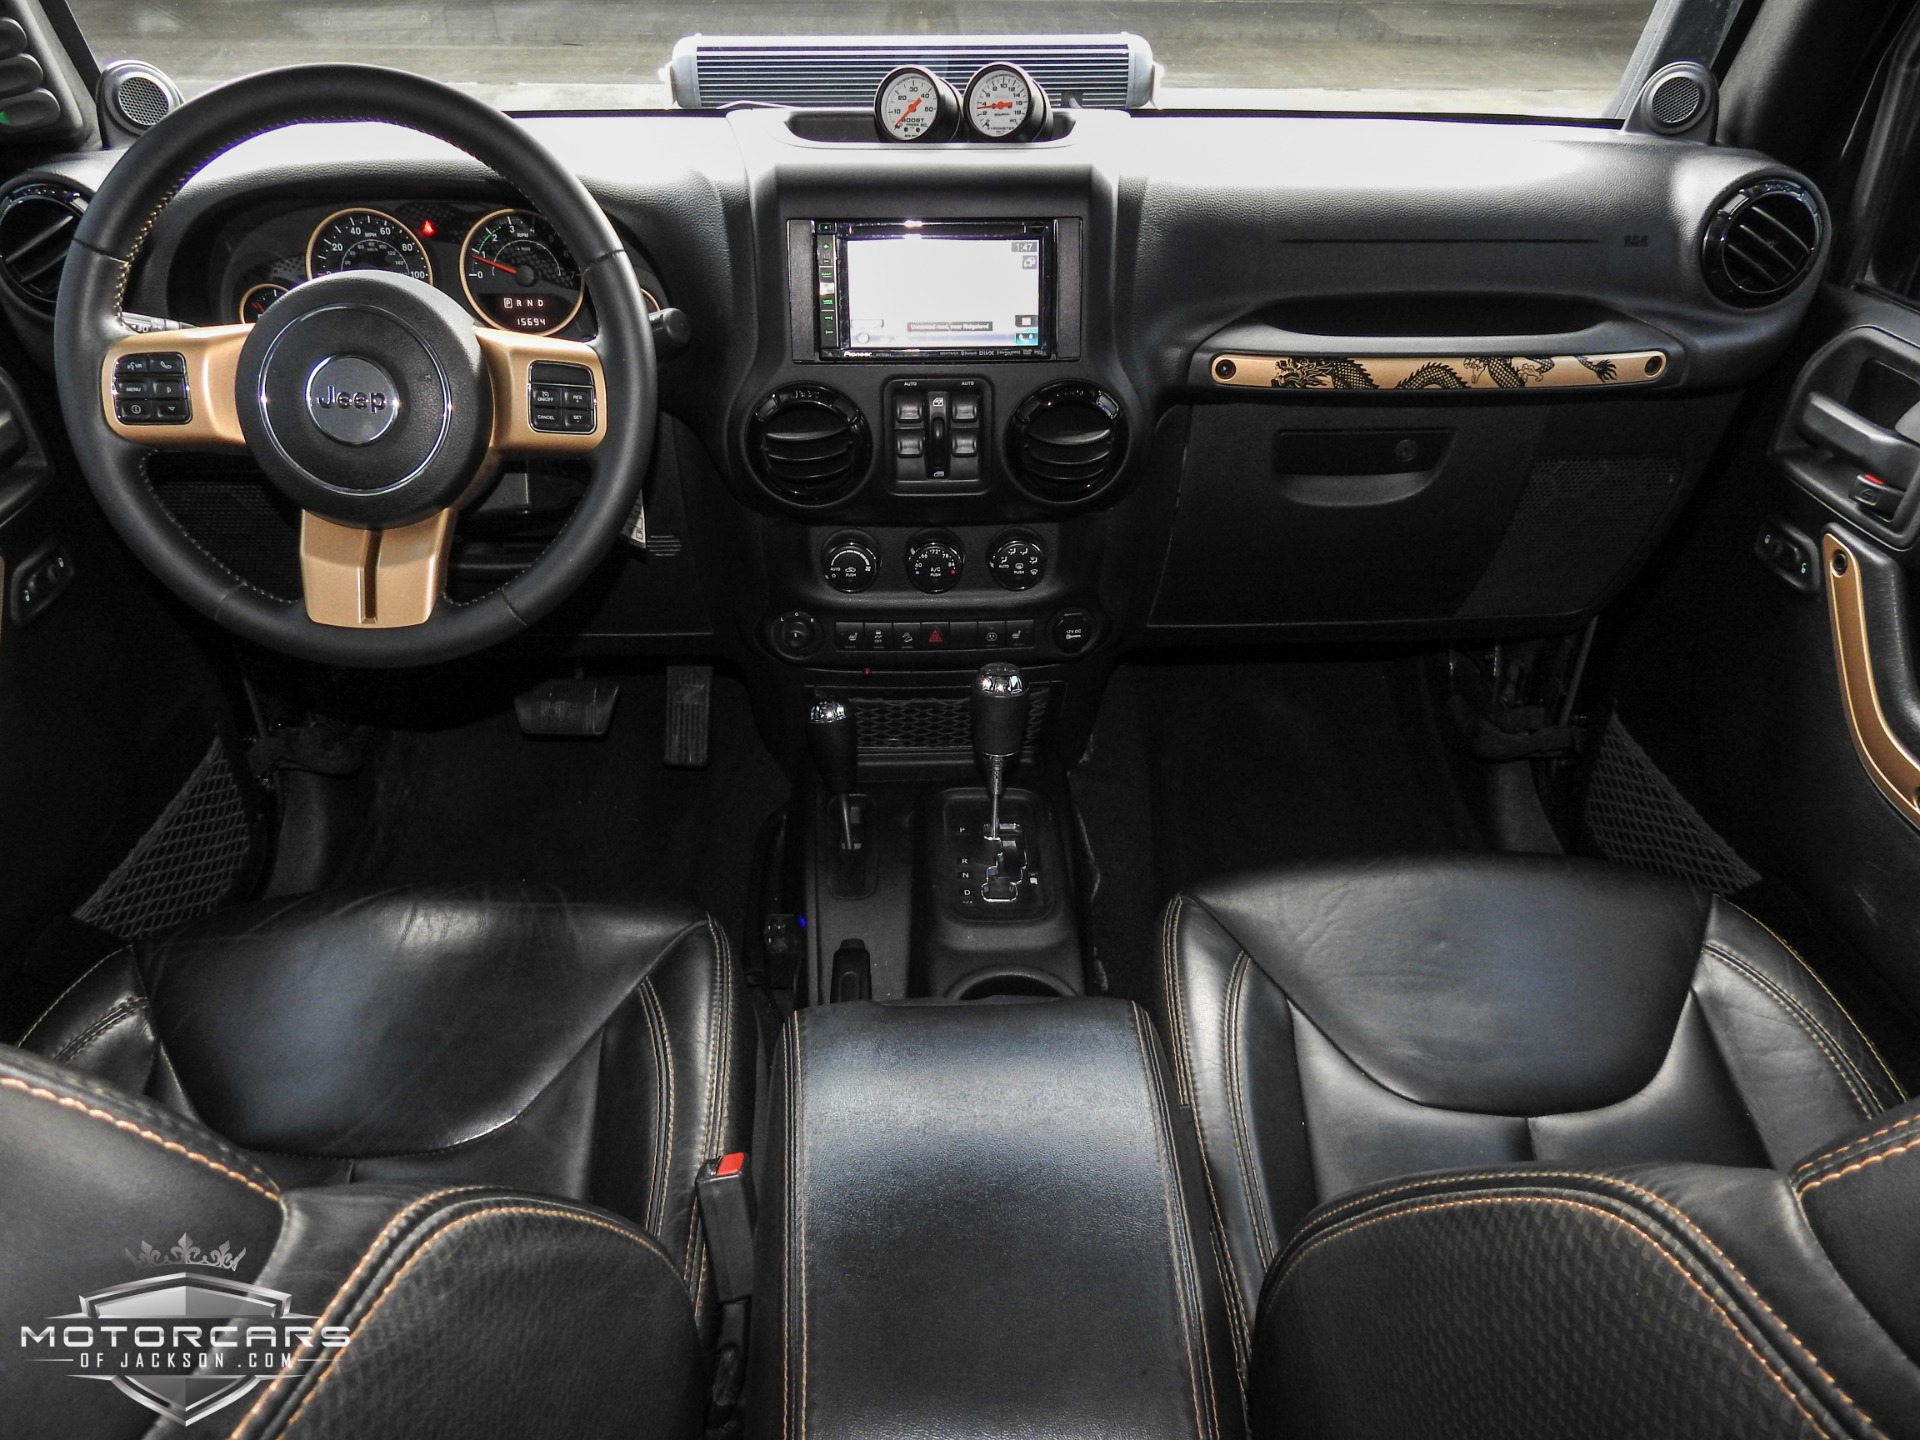 Used-2014-Jeep-Wrangler-Unlimited-Dragon-Edition---Cummins-Diesel-Conversion-Jackson-MS